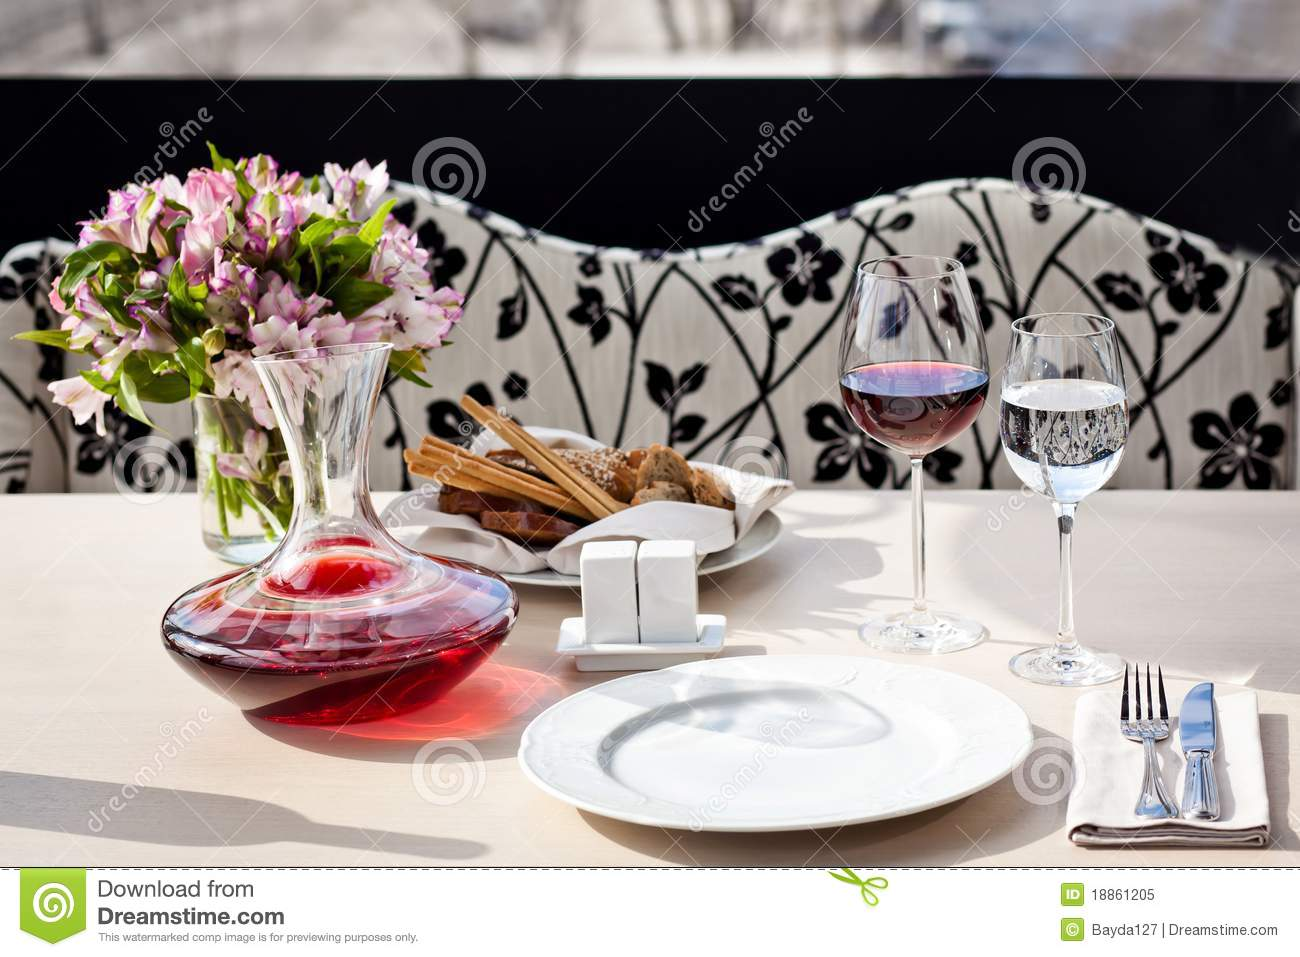 Fancy restaurant table setting - Fine Restaurant Dinner Table Place Setting